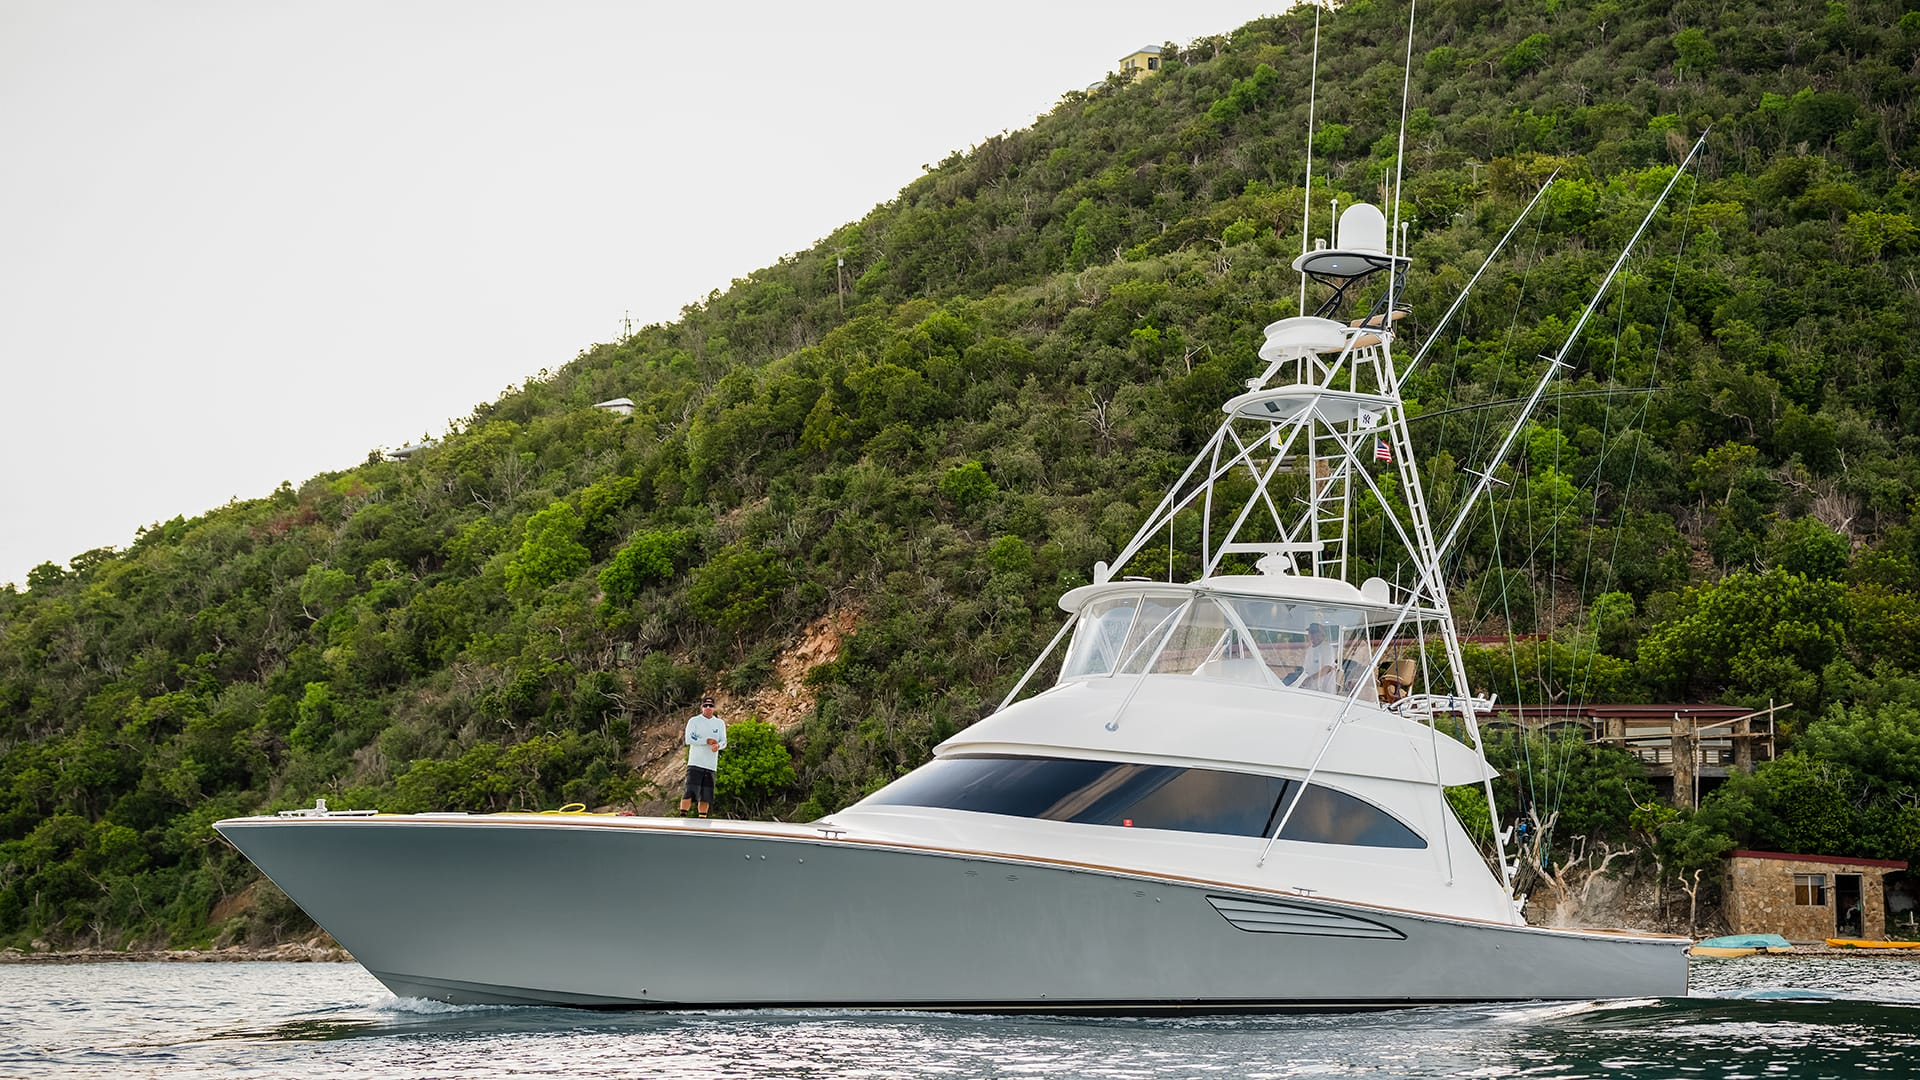 Viking Sportfishing Yacht Gray